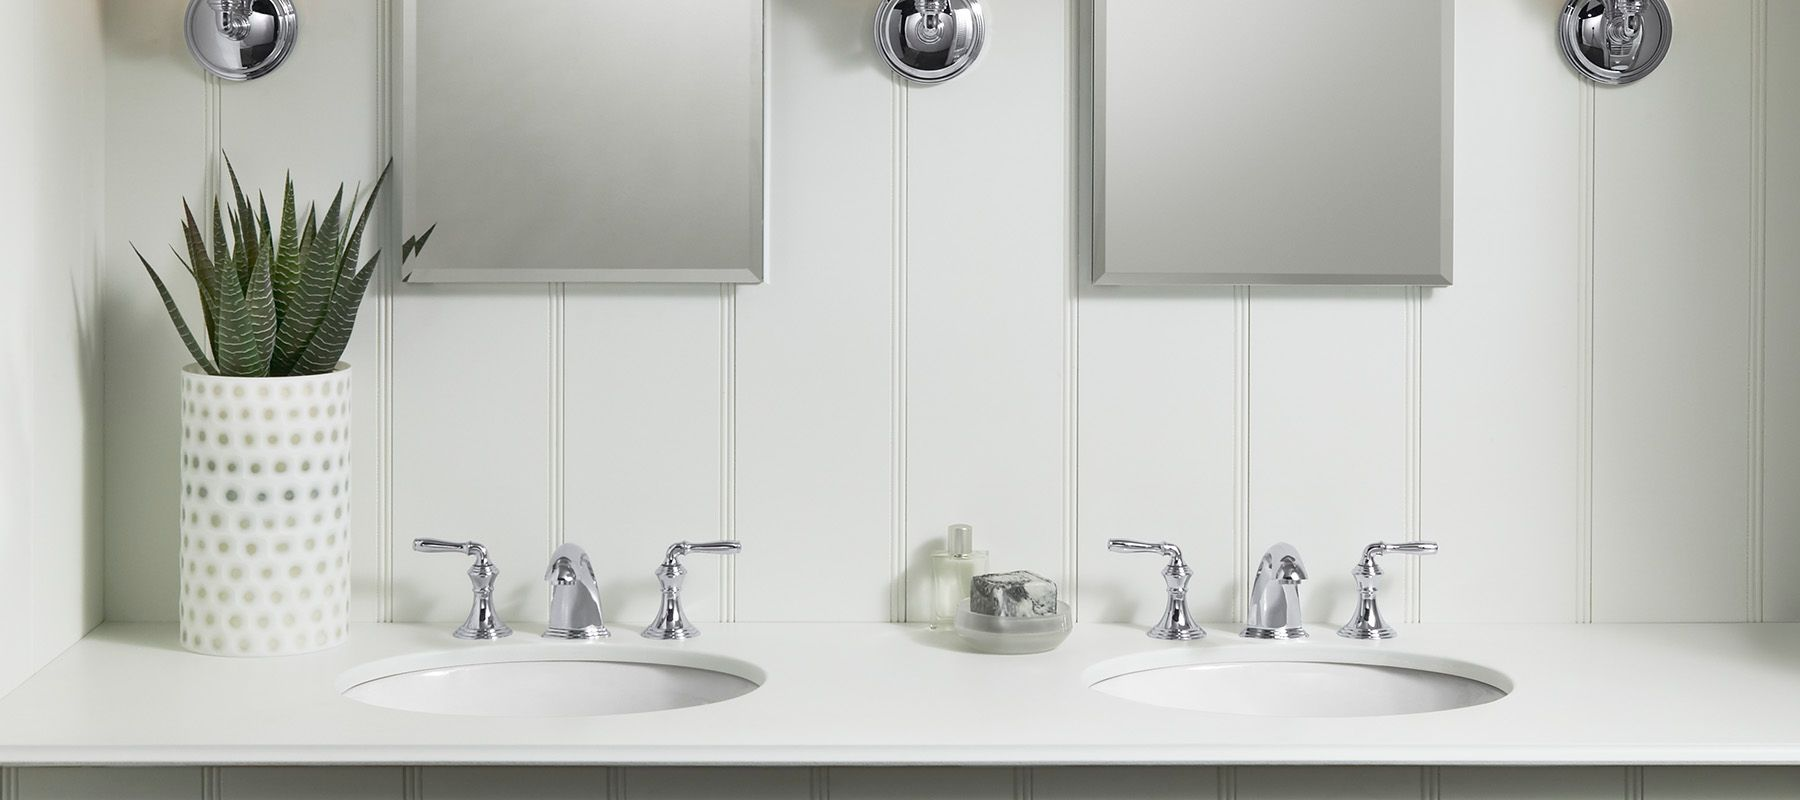 Bathroom Sinks Buying Guide